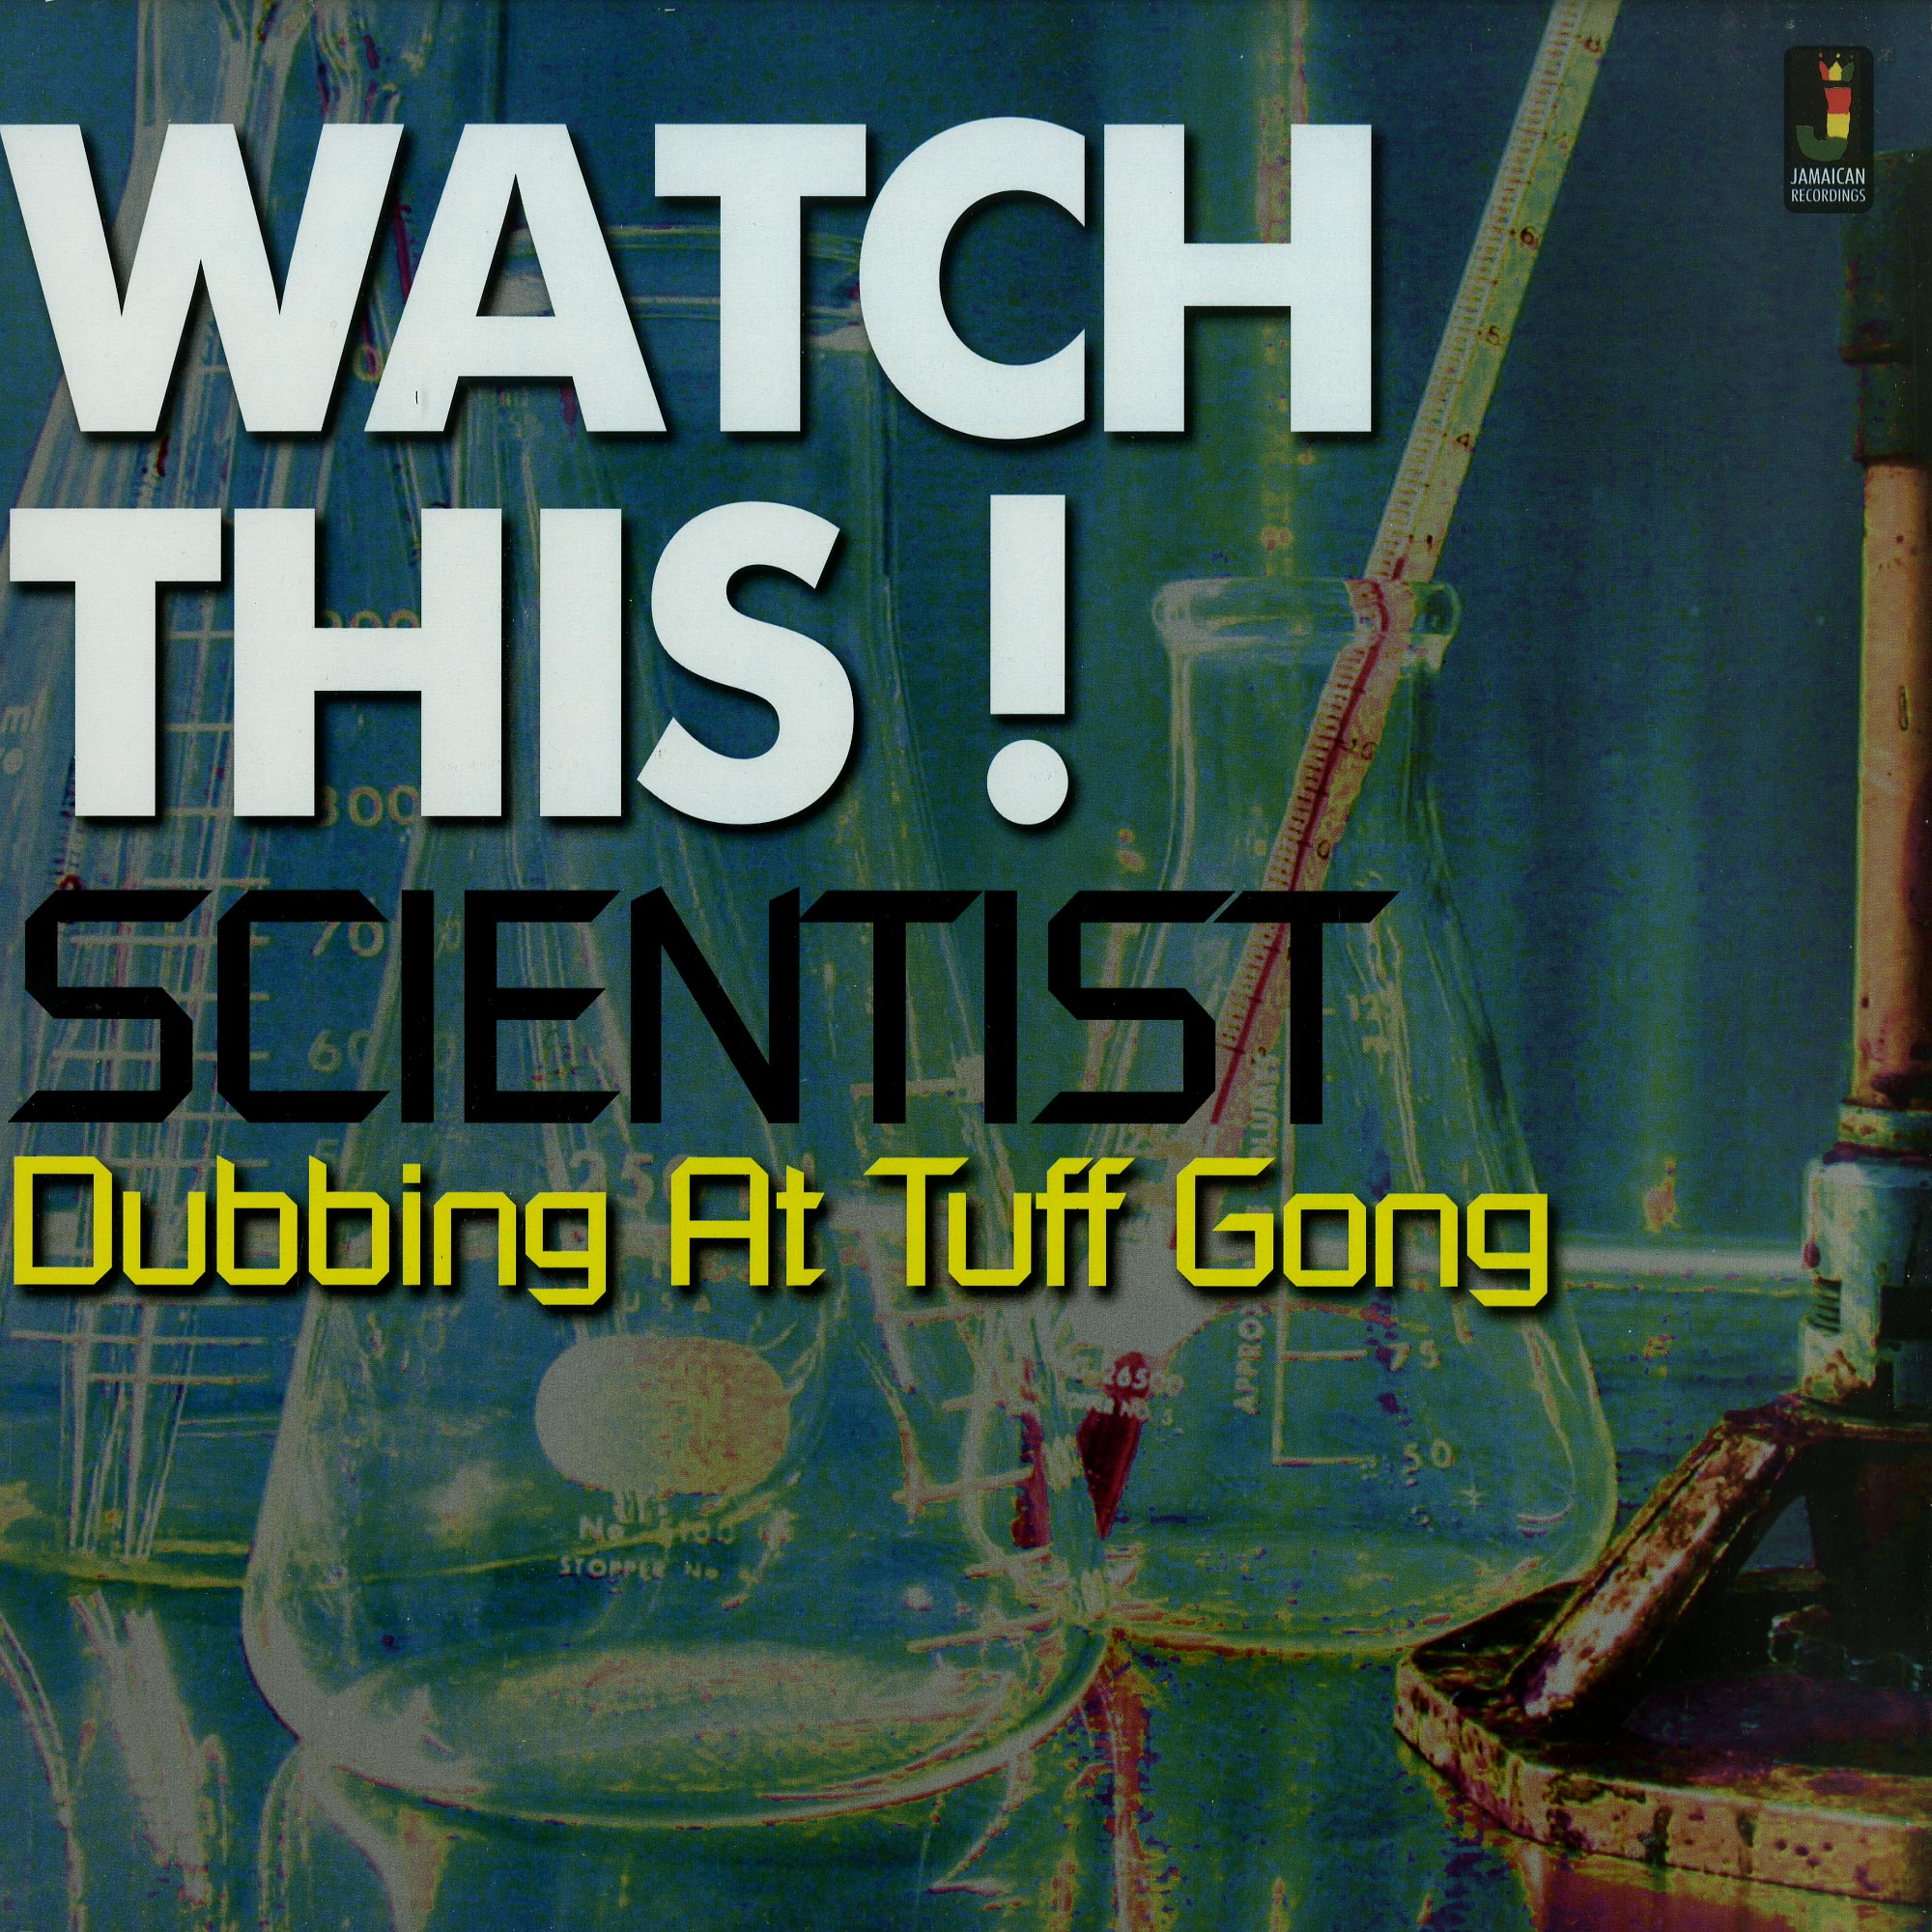 Scientist - WATCH THIS DUBBING AT TUFF GON